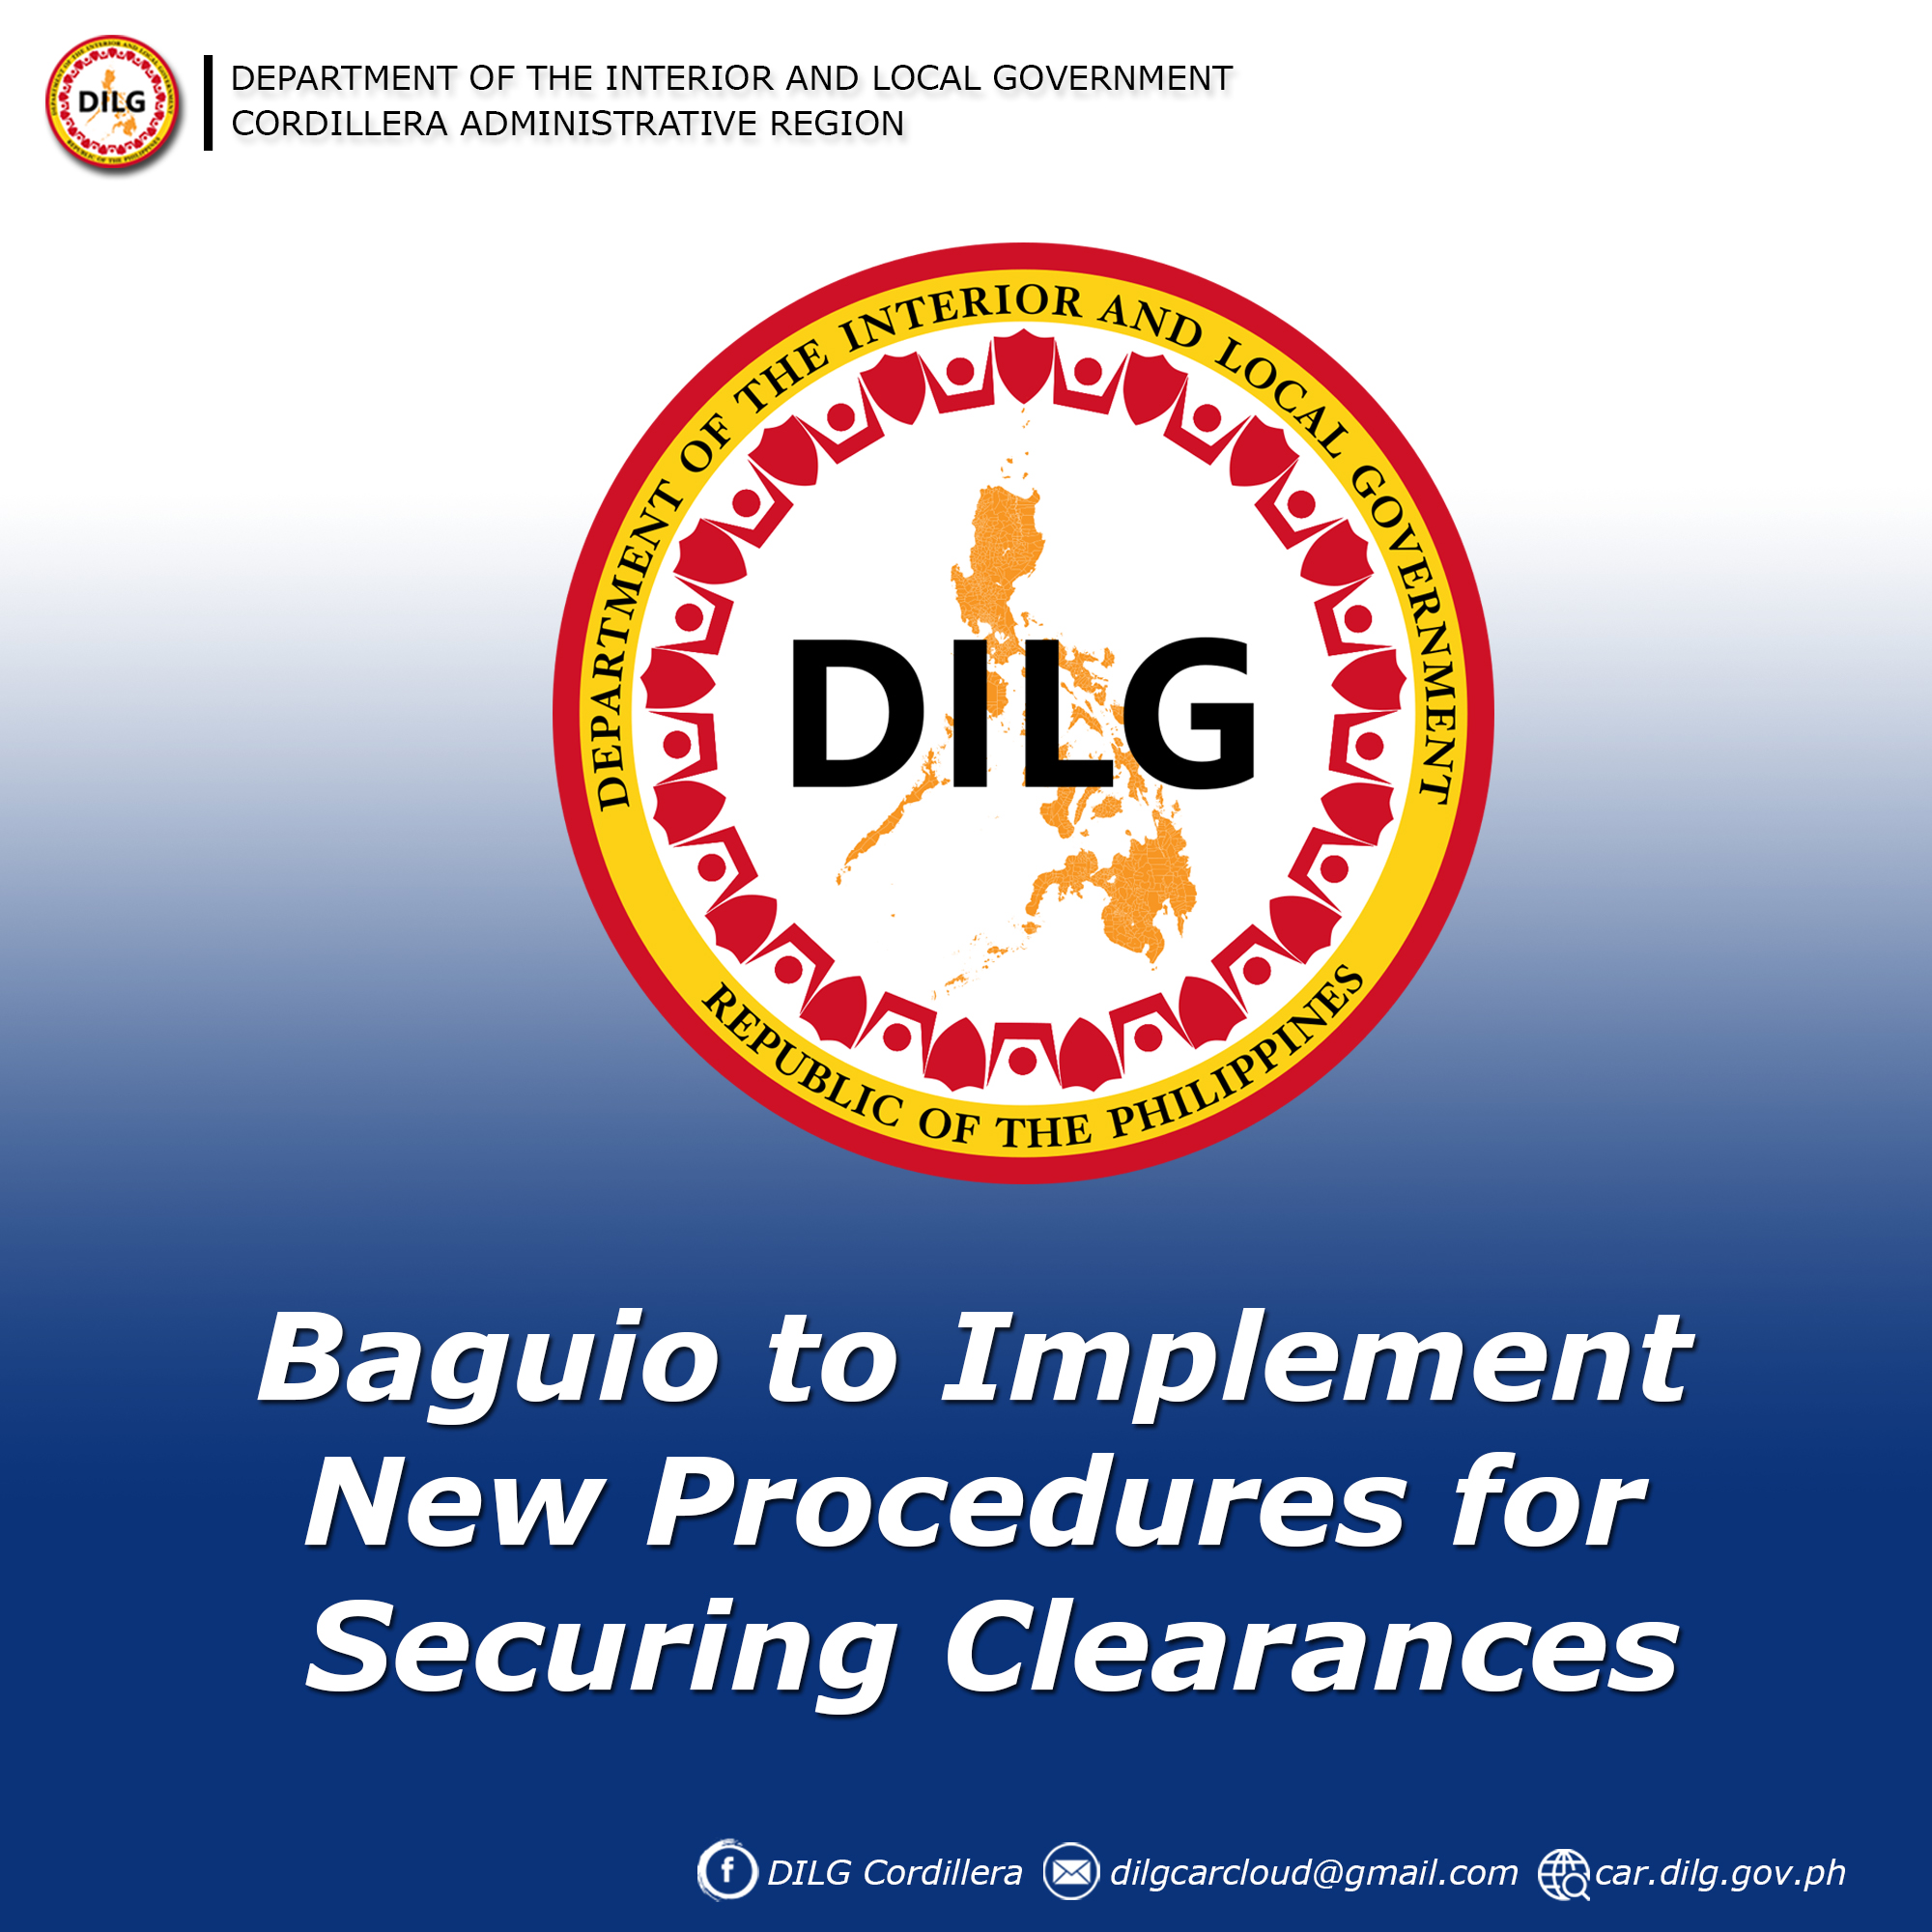 Baguio to Implement New Procedures for Securing Clearances